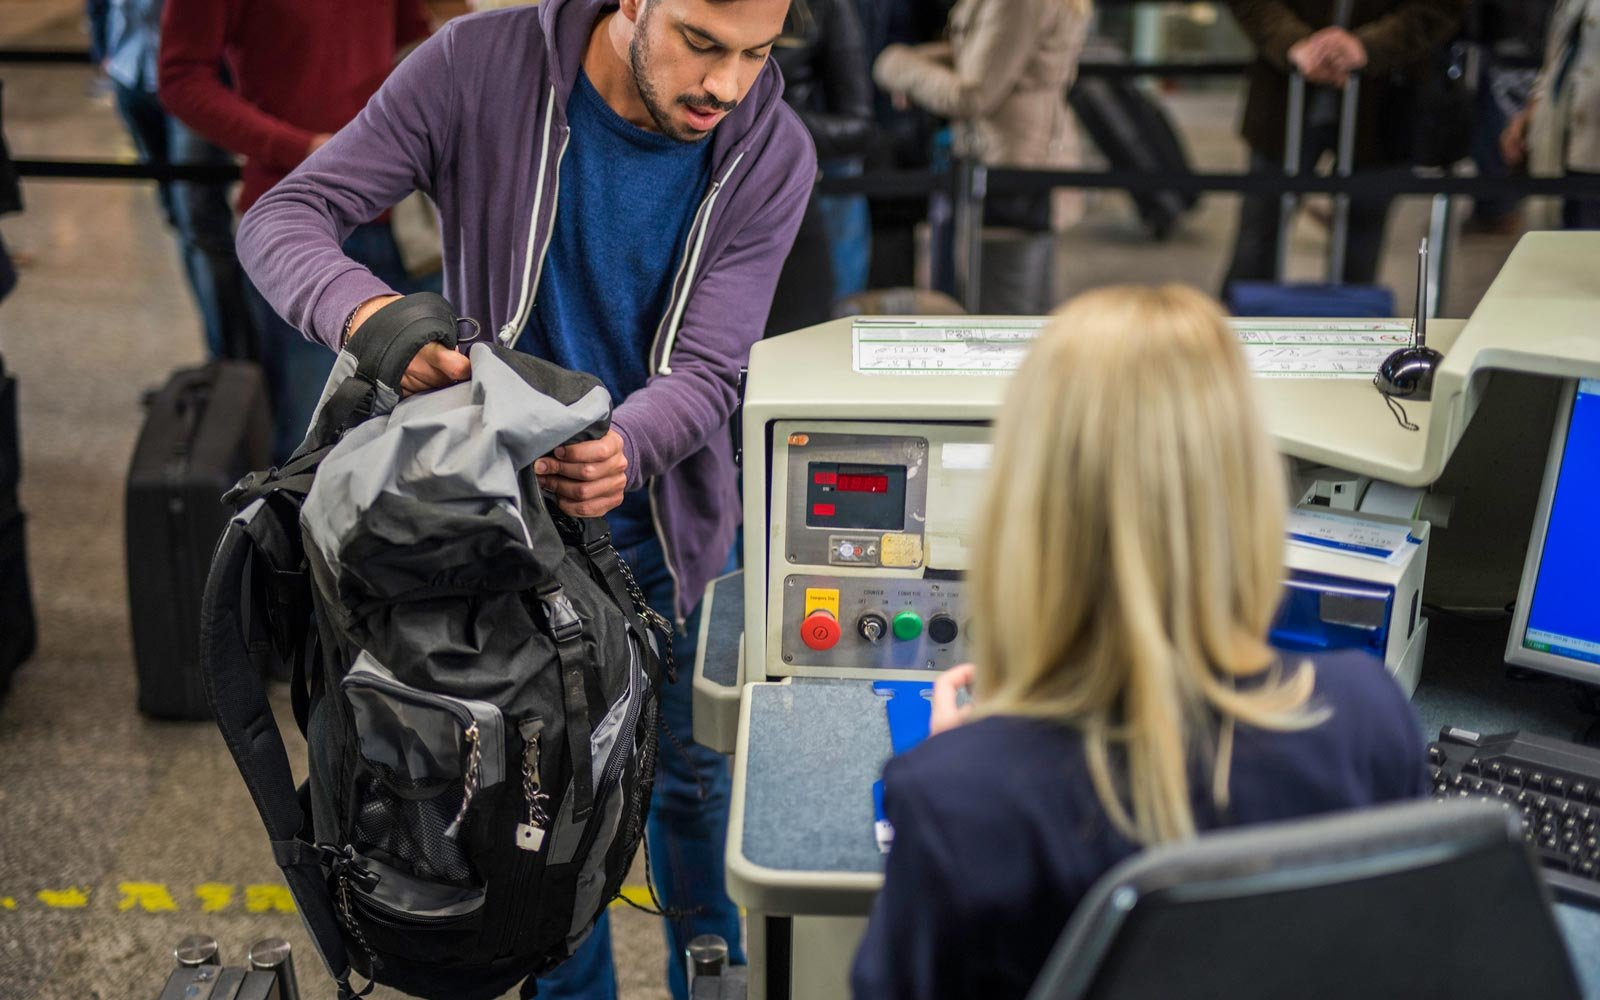 This Company Wants to Discreetly Weigh Passengers Before Flights to Help Airlines Use Less Fuel